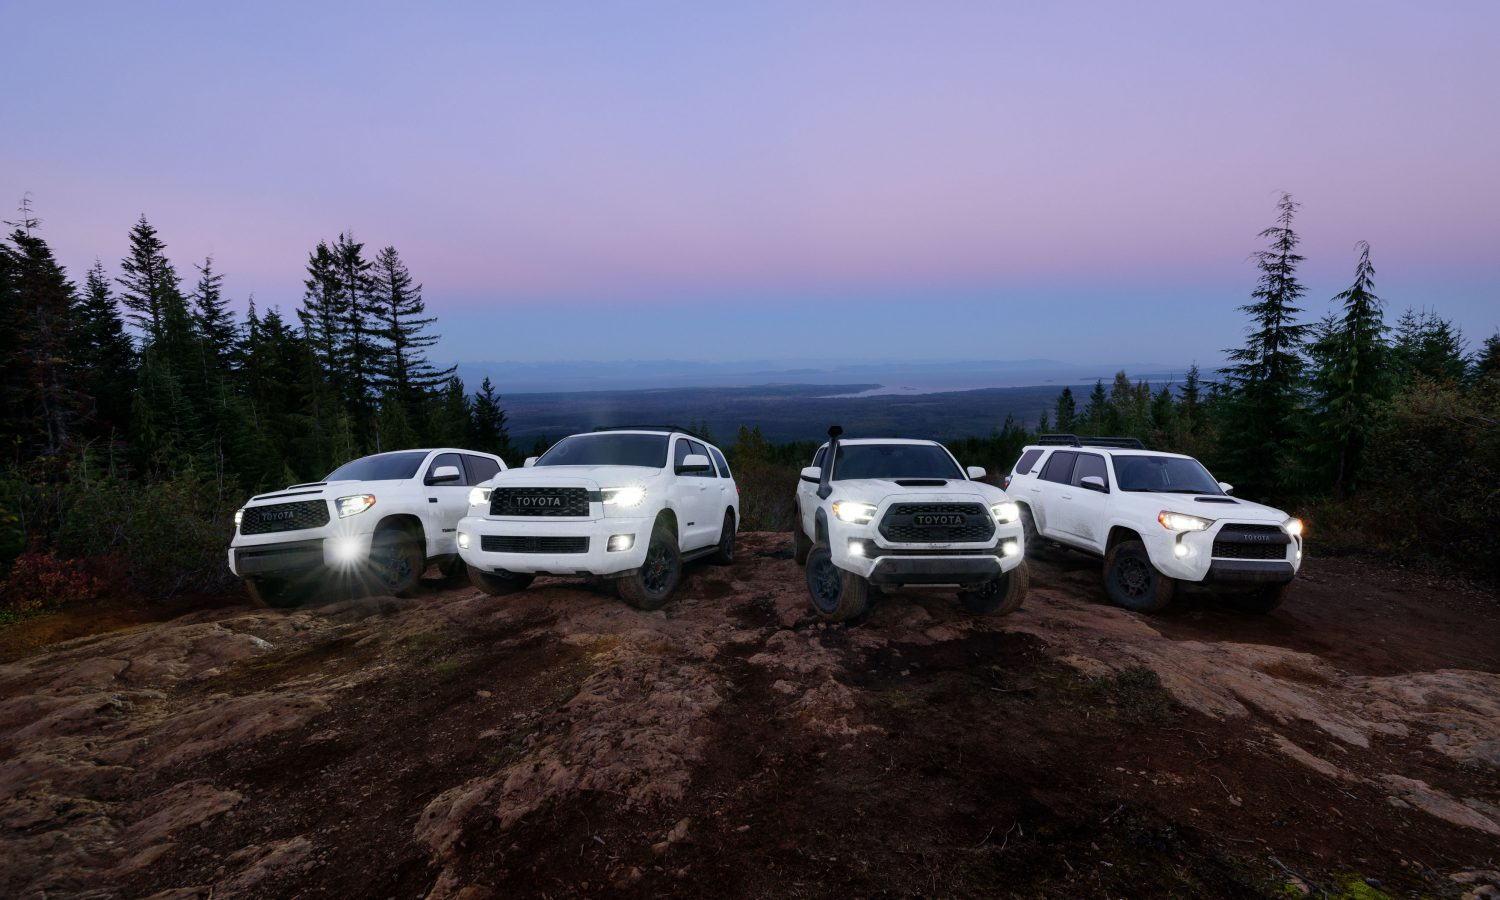 2020 Toyota Sequoia TRD Pro Opens Path to Family Adventures, Leads Charge for Updates on all TRD Pro Models